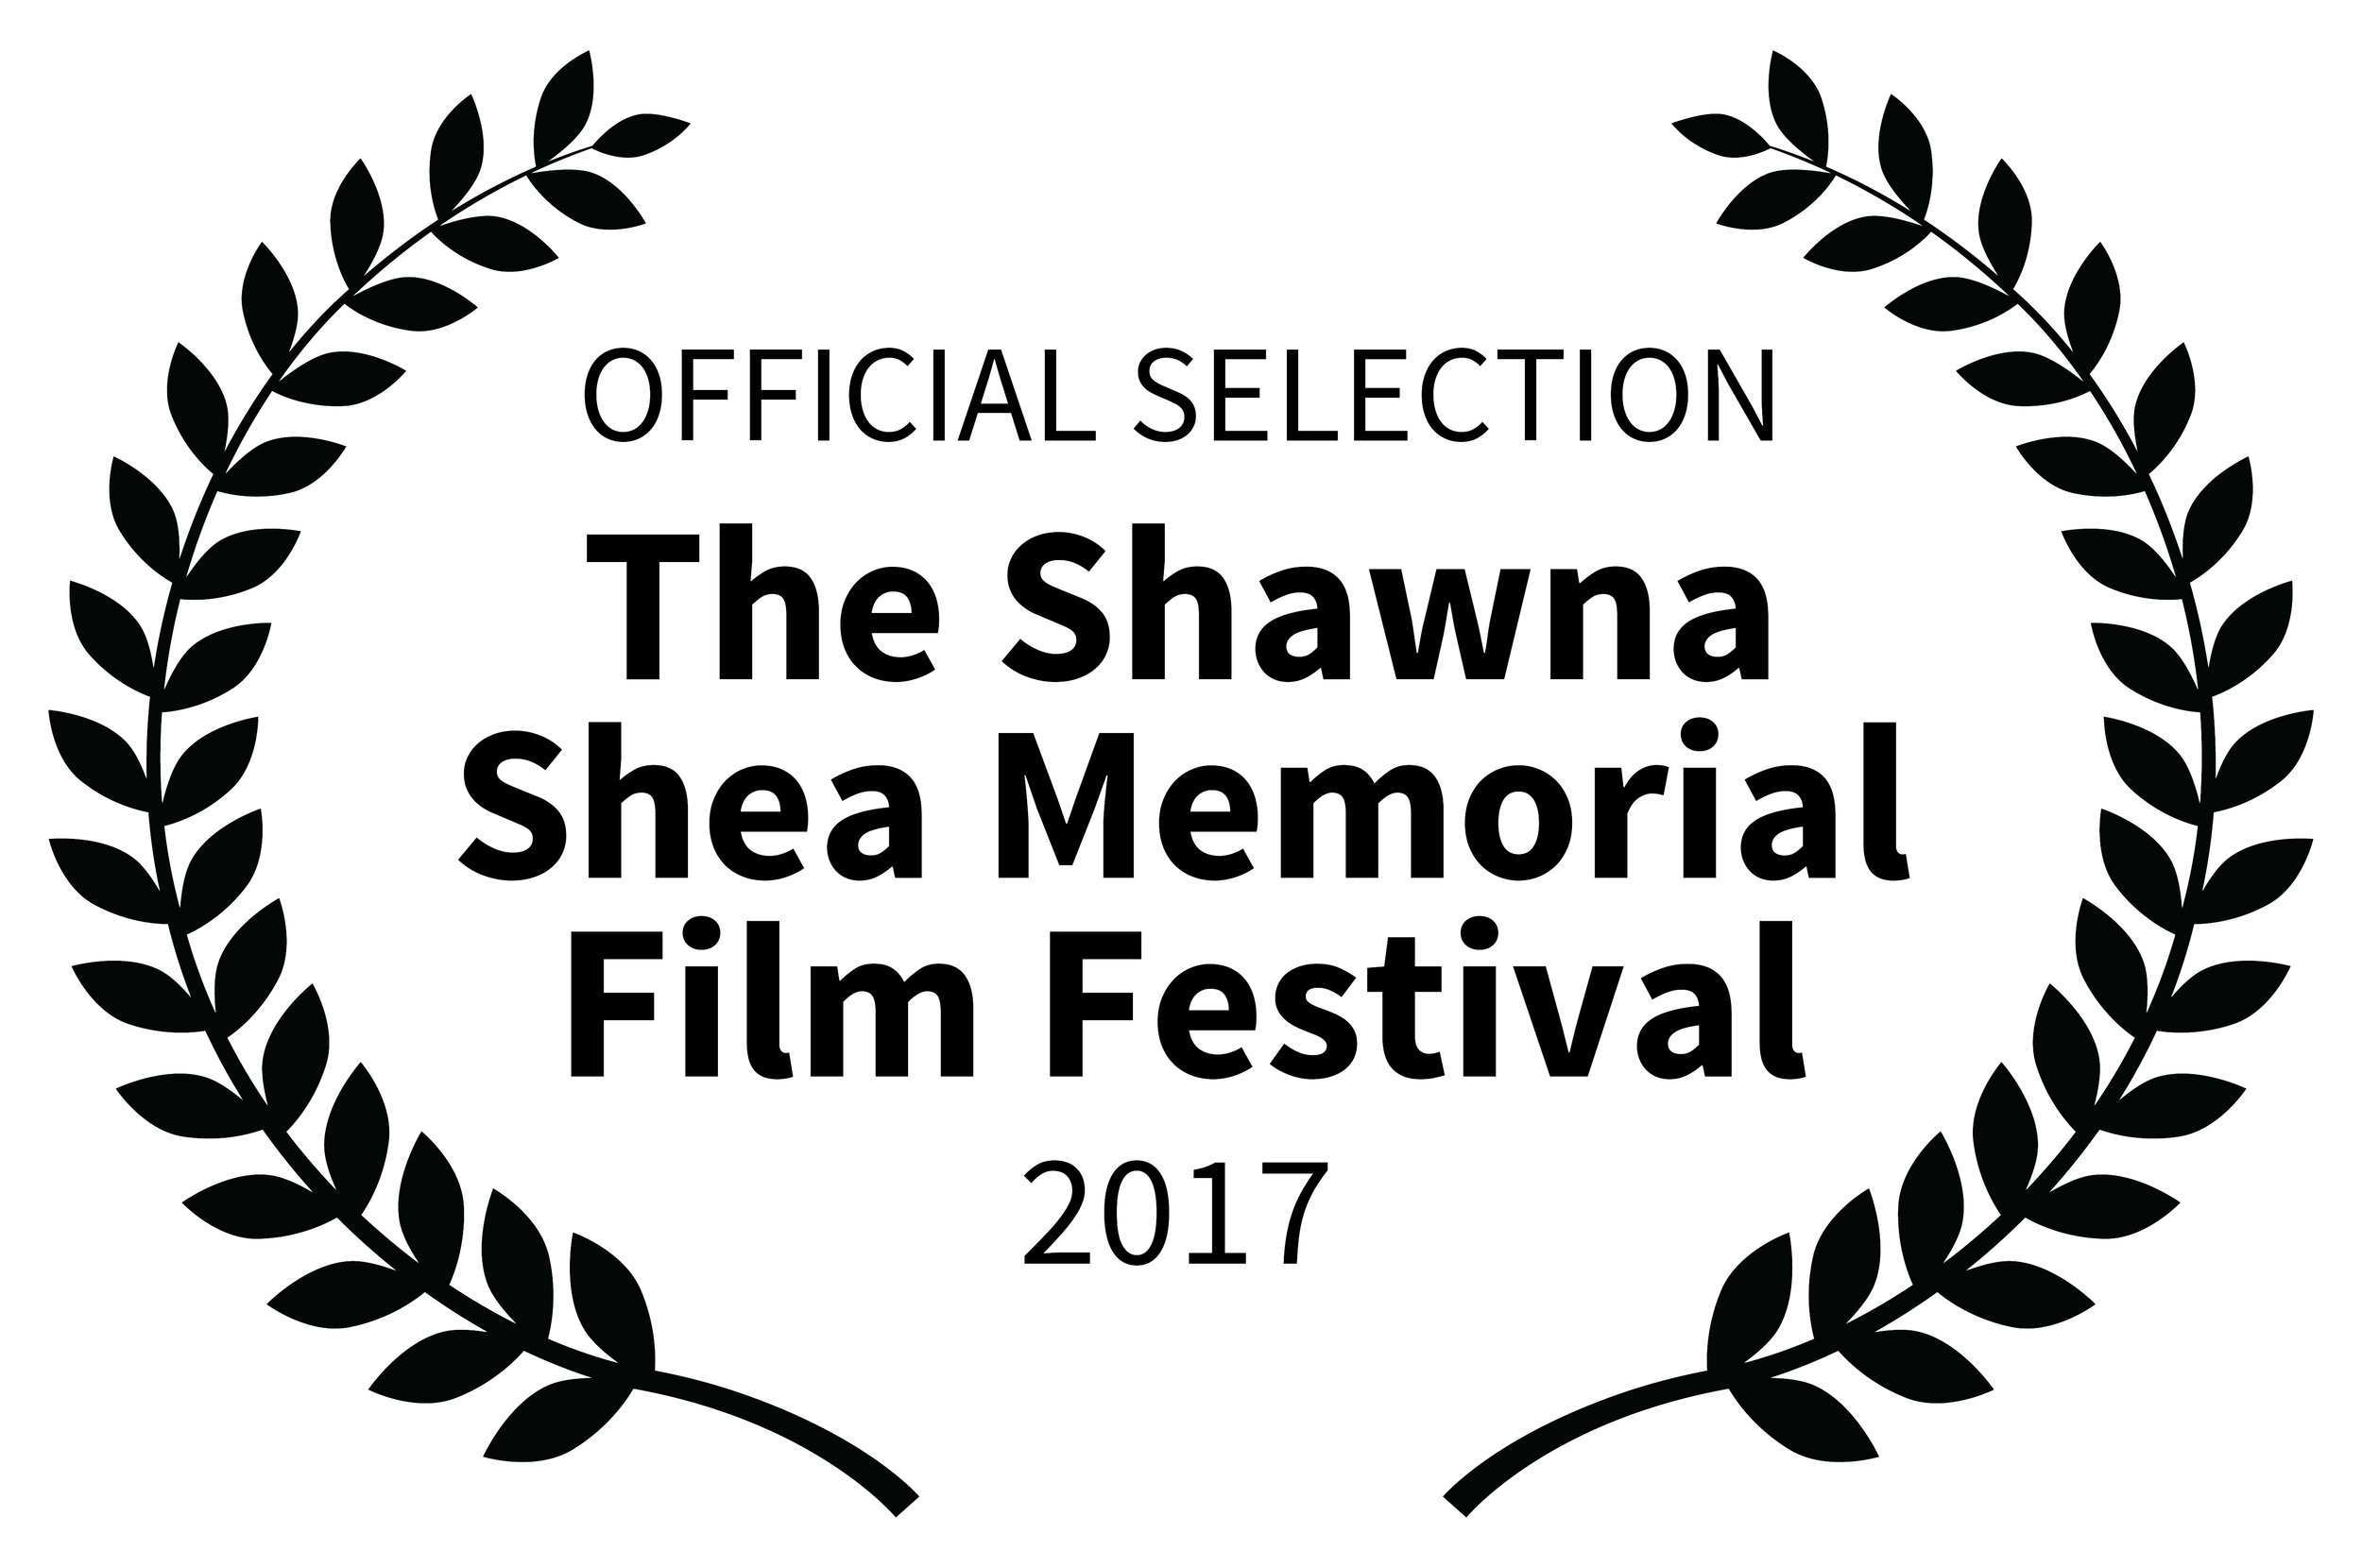 OFFICIALSELECTION-TheShawnaSheaMemorialFilmFestival-2017 copy.jpg